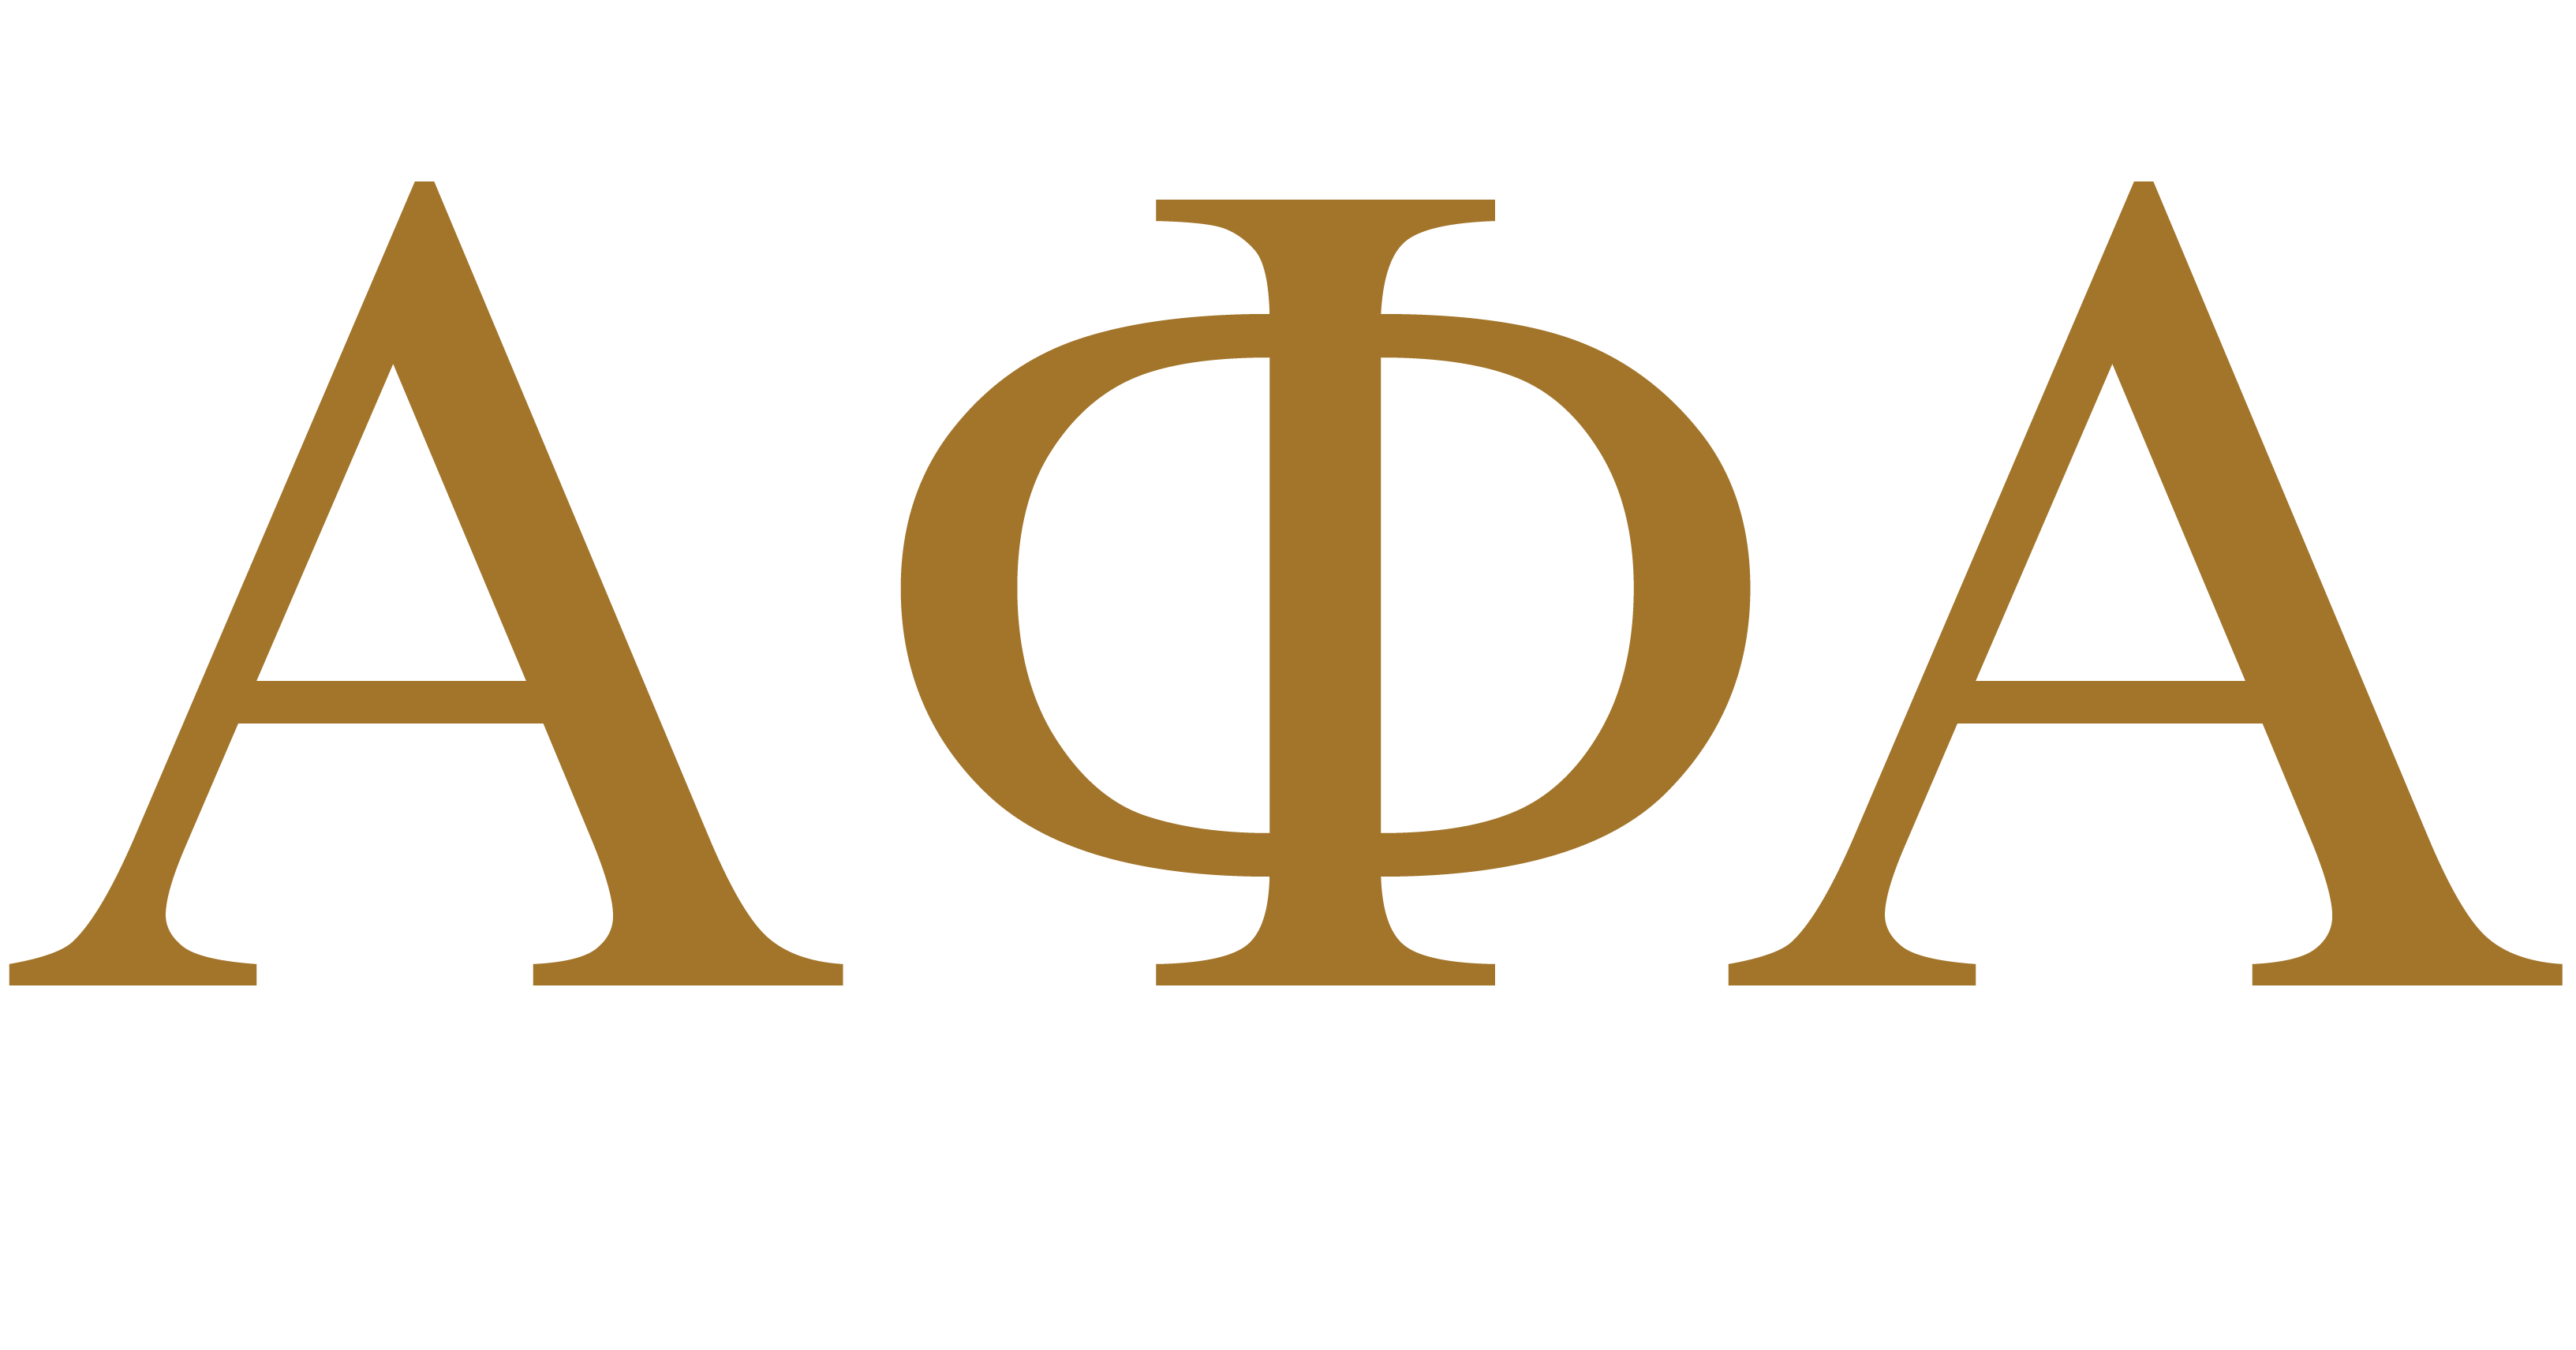 Light Alpha Phi Alpha